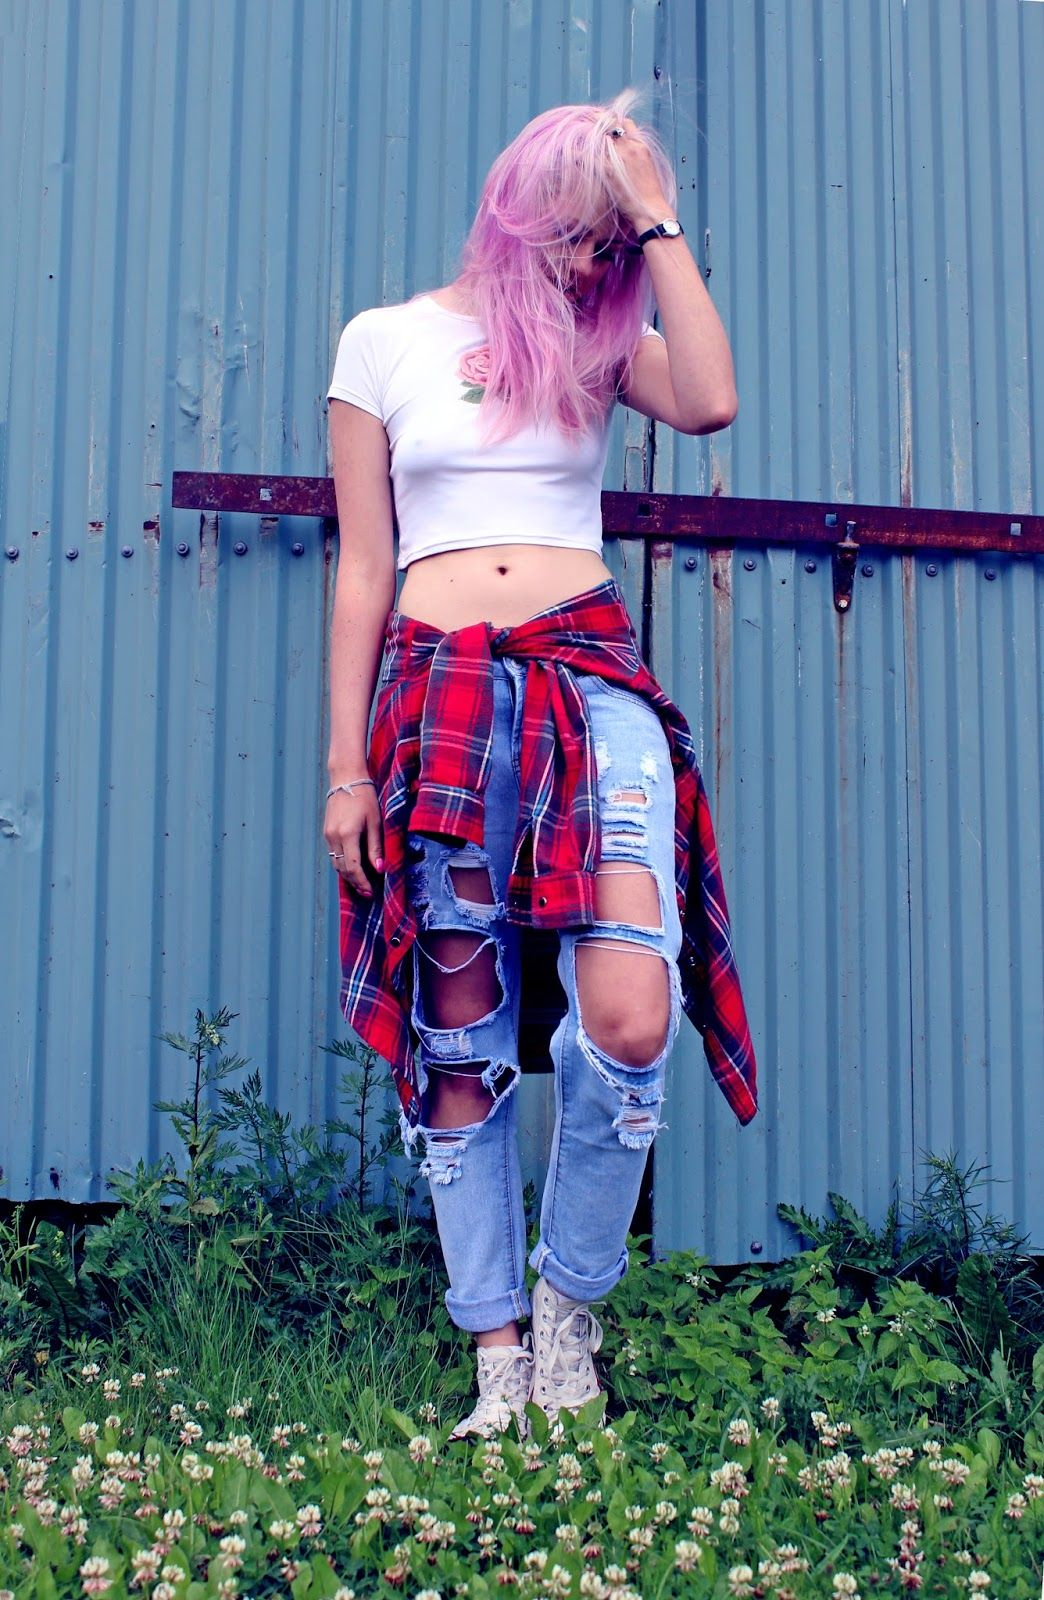 Ripped jeans flannel shirt   Stylish Ways to Wear Flannel Shirts  Style  Pinterest  Flannel